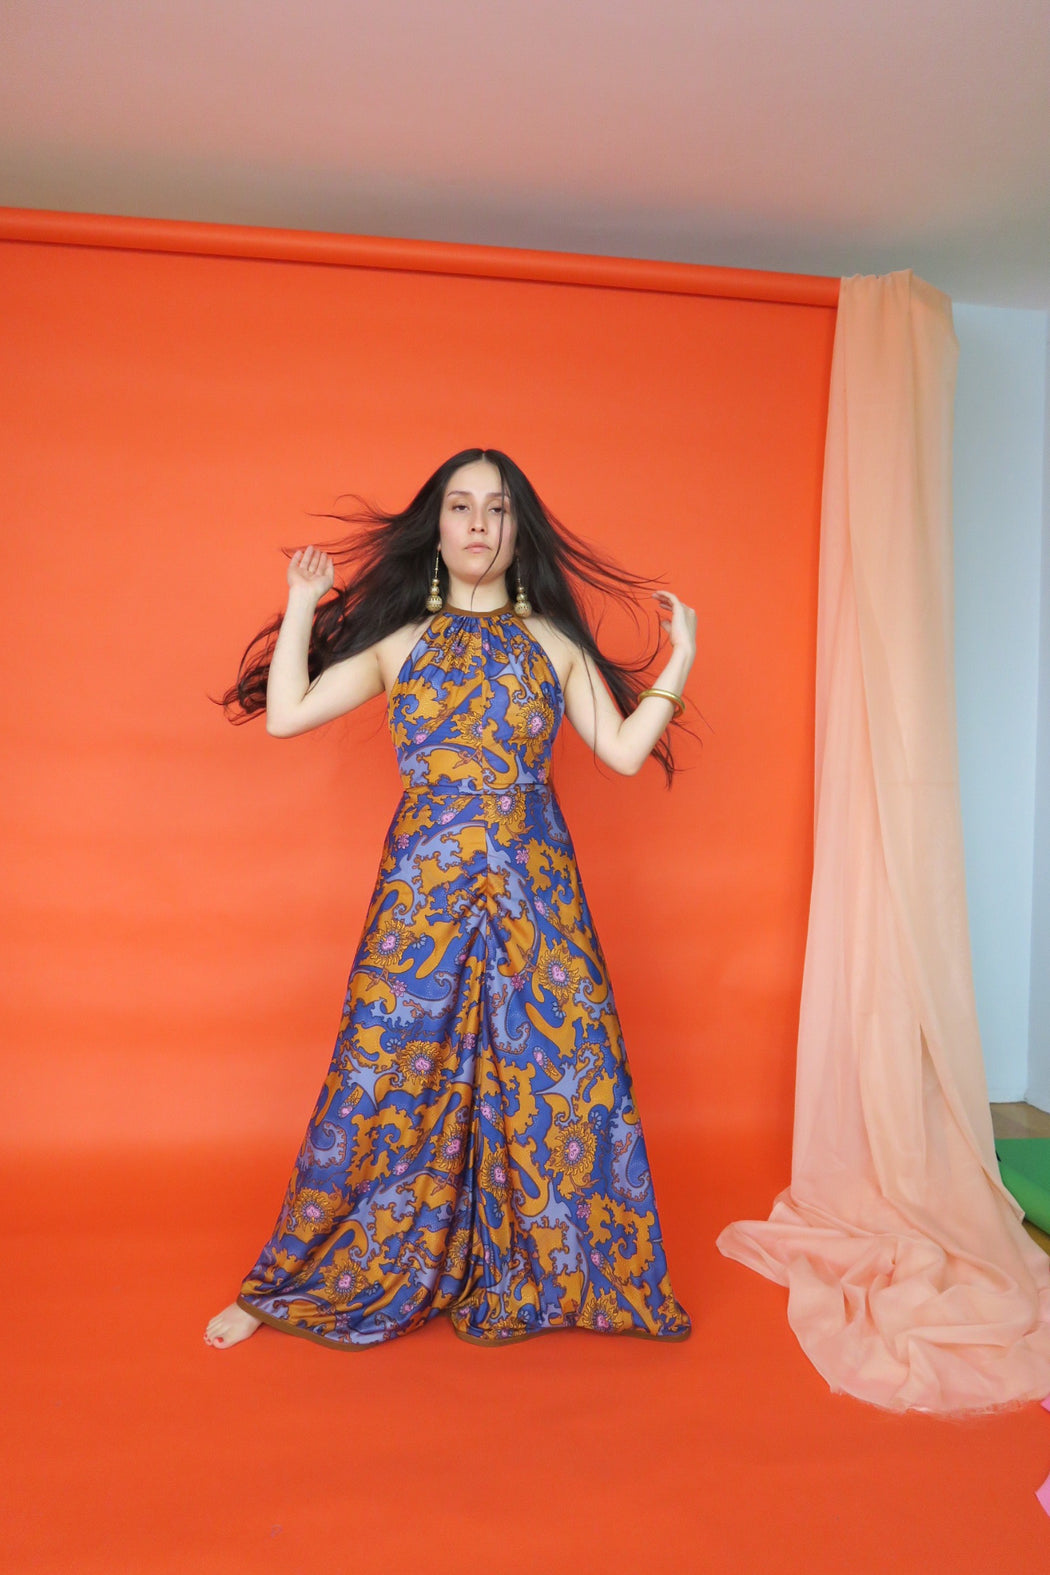 Cher Paisley 70s Maxi Dress